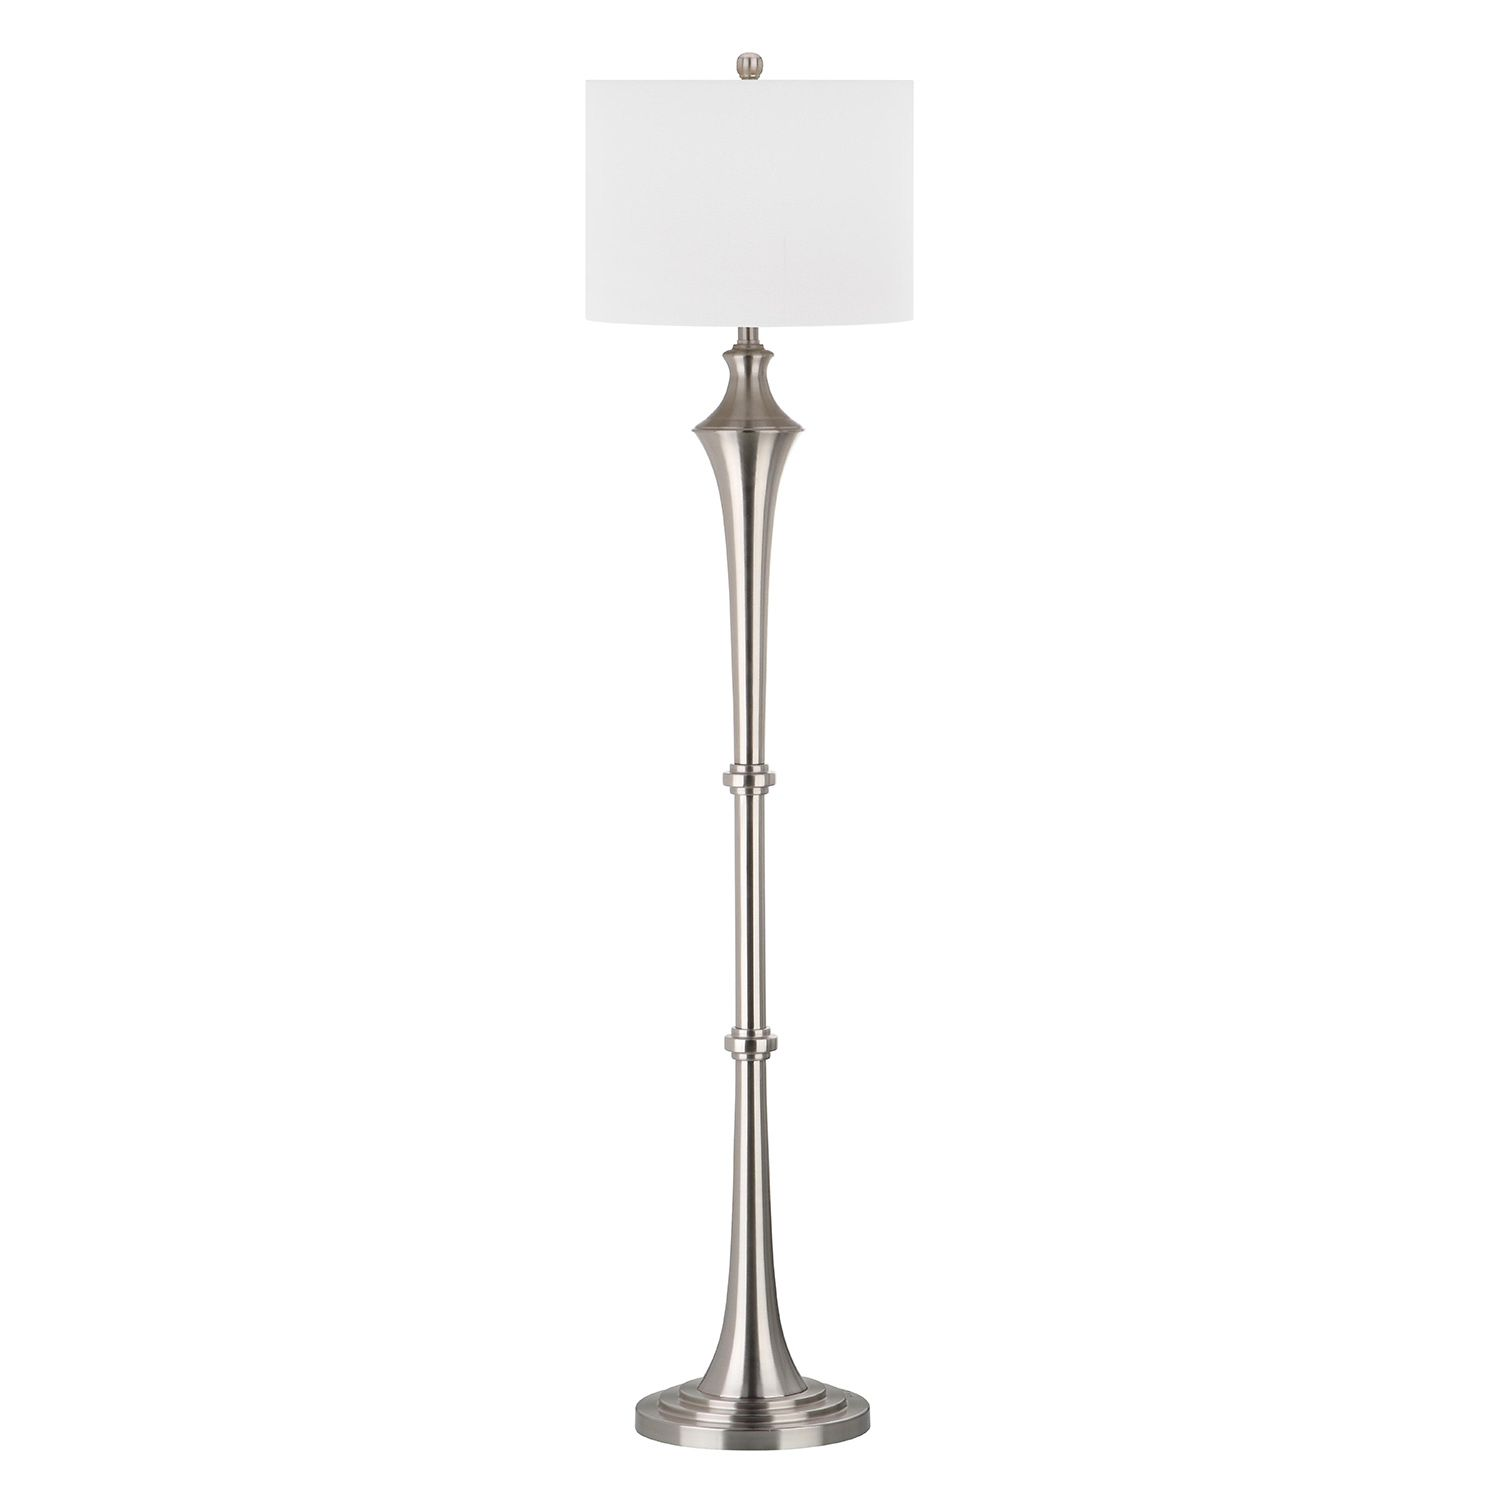 Gold Floor Reading Lamp Floor Lamps Kohl S